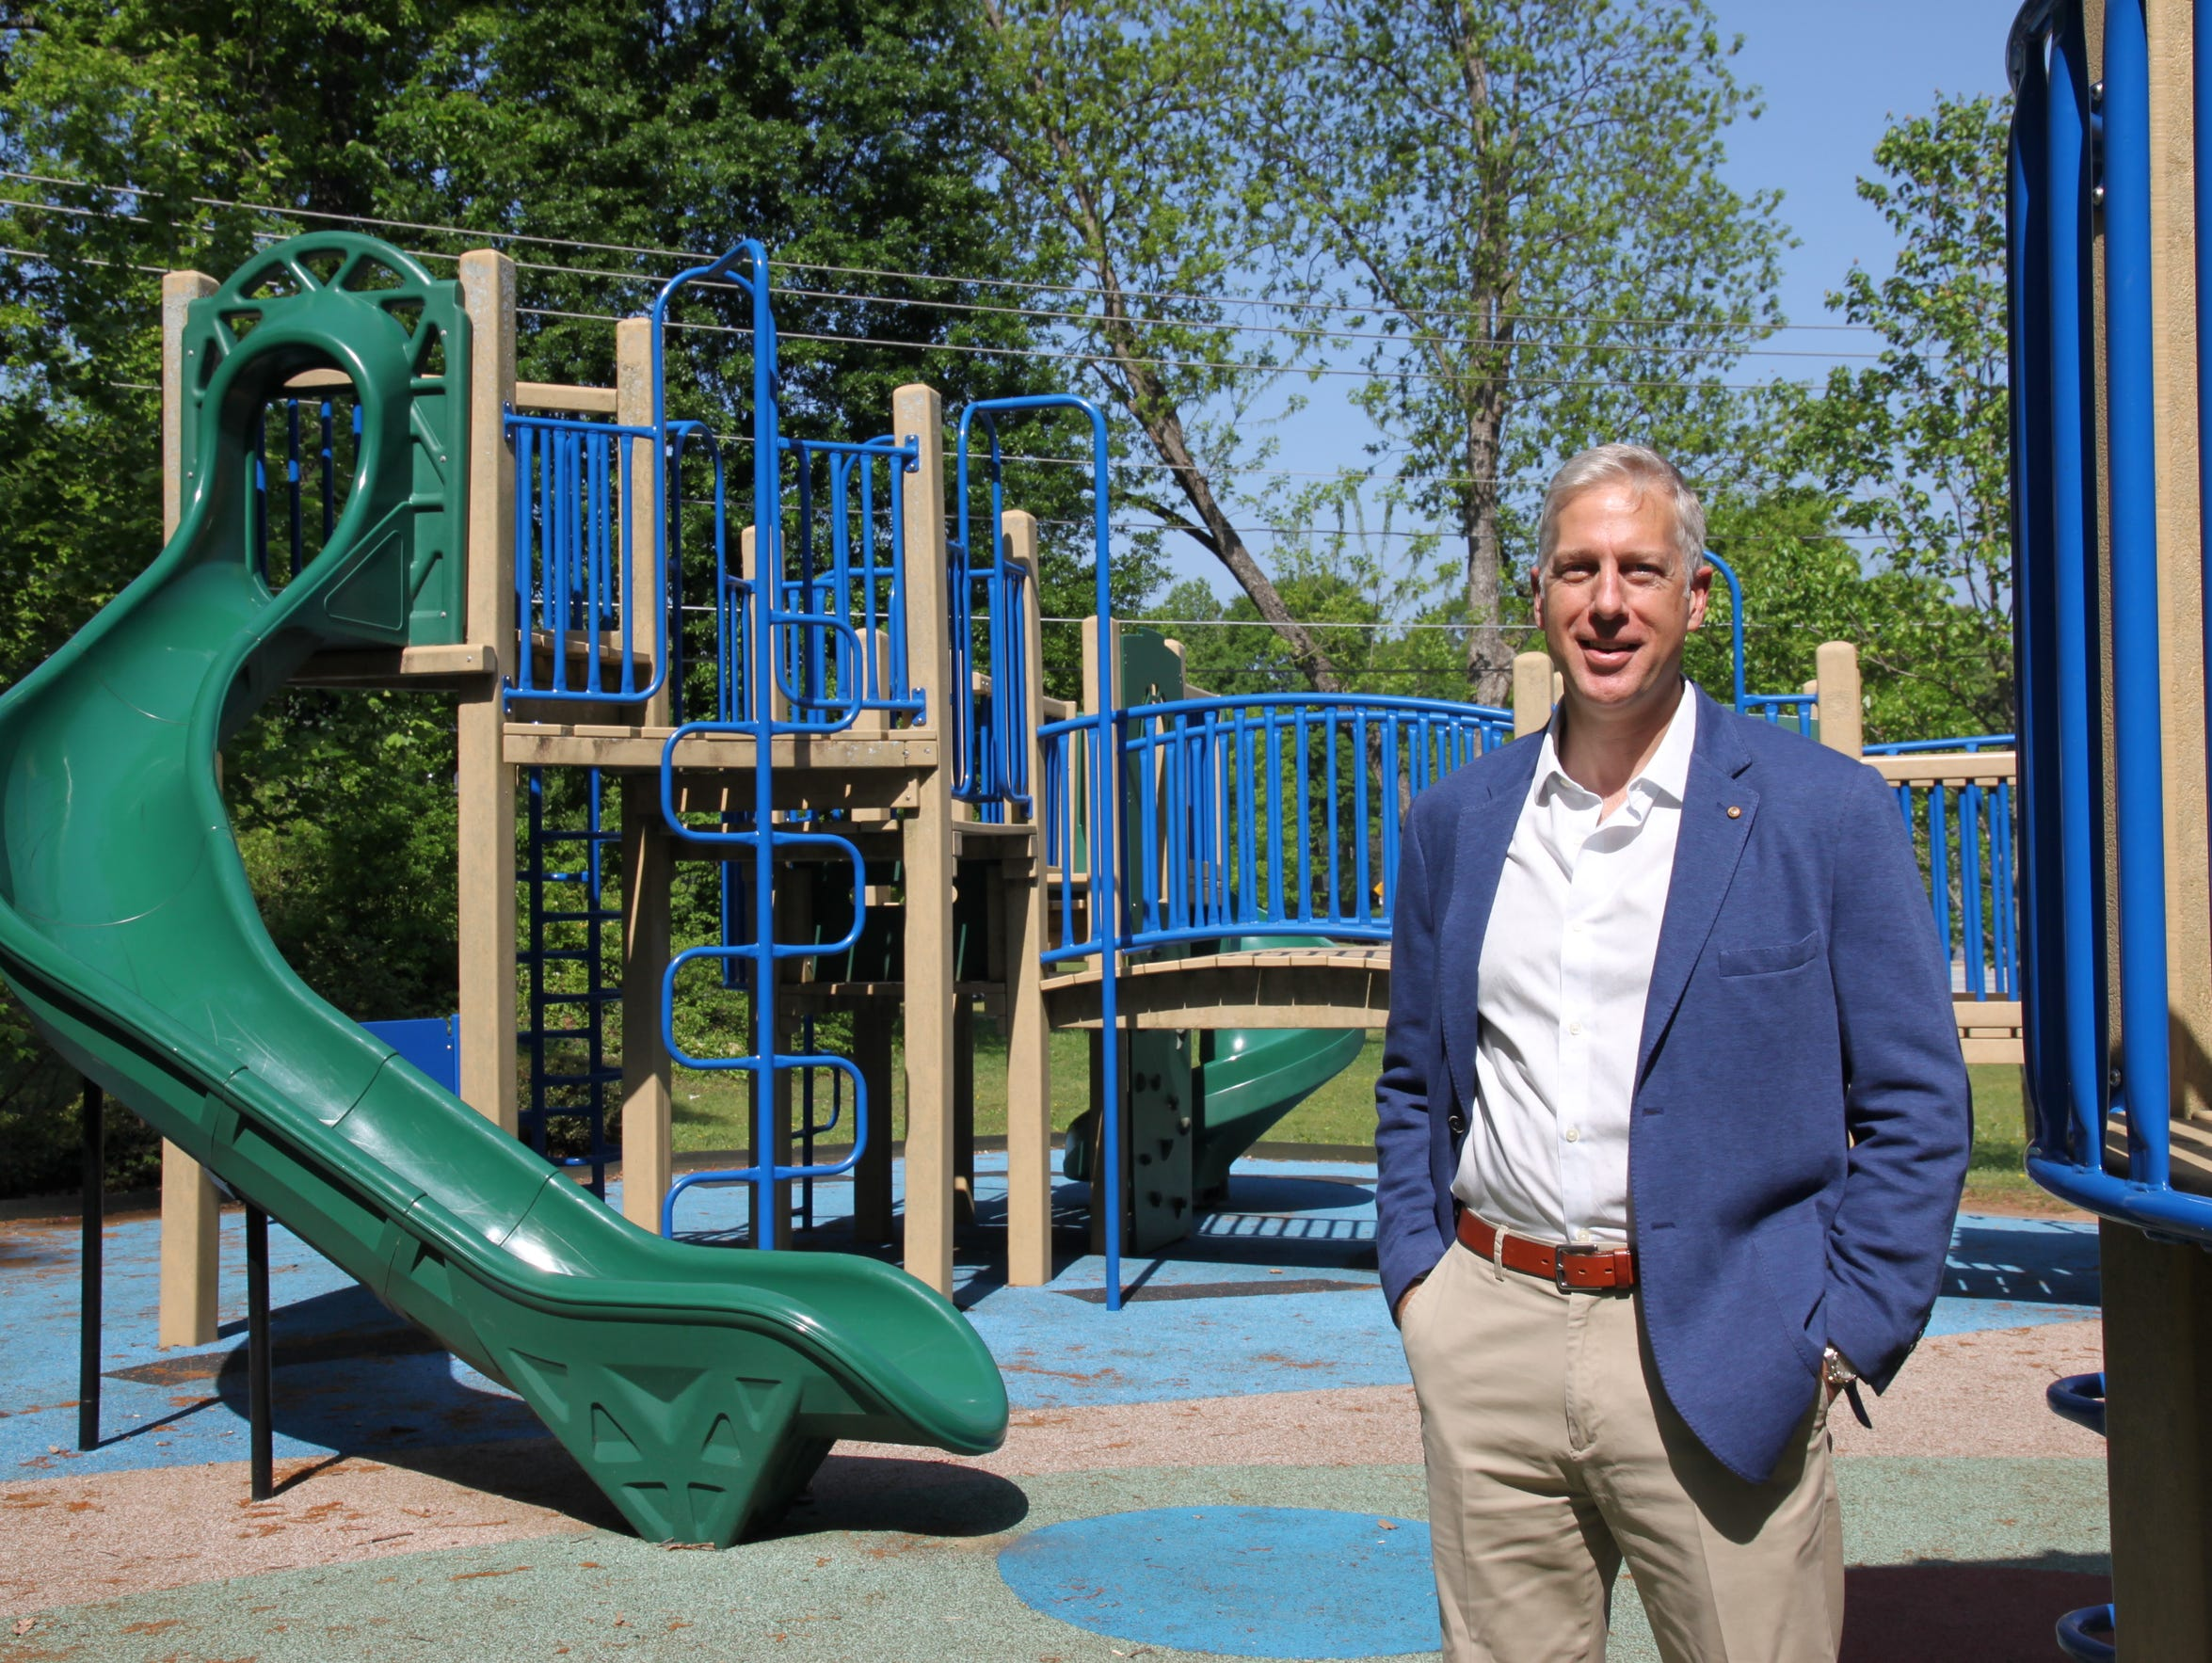 EcoPlay Playgrounds of Atlanta, which makes more durable